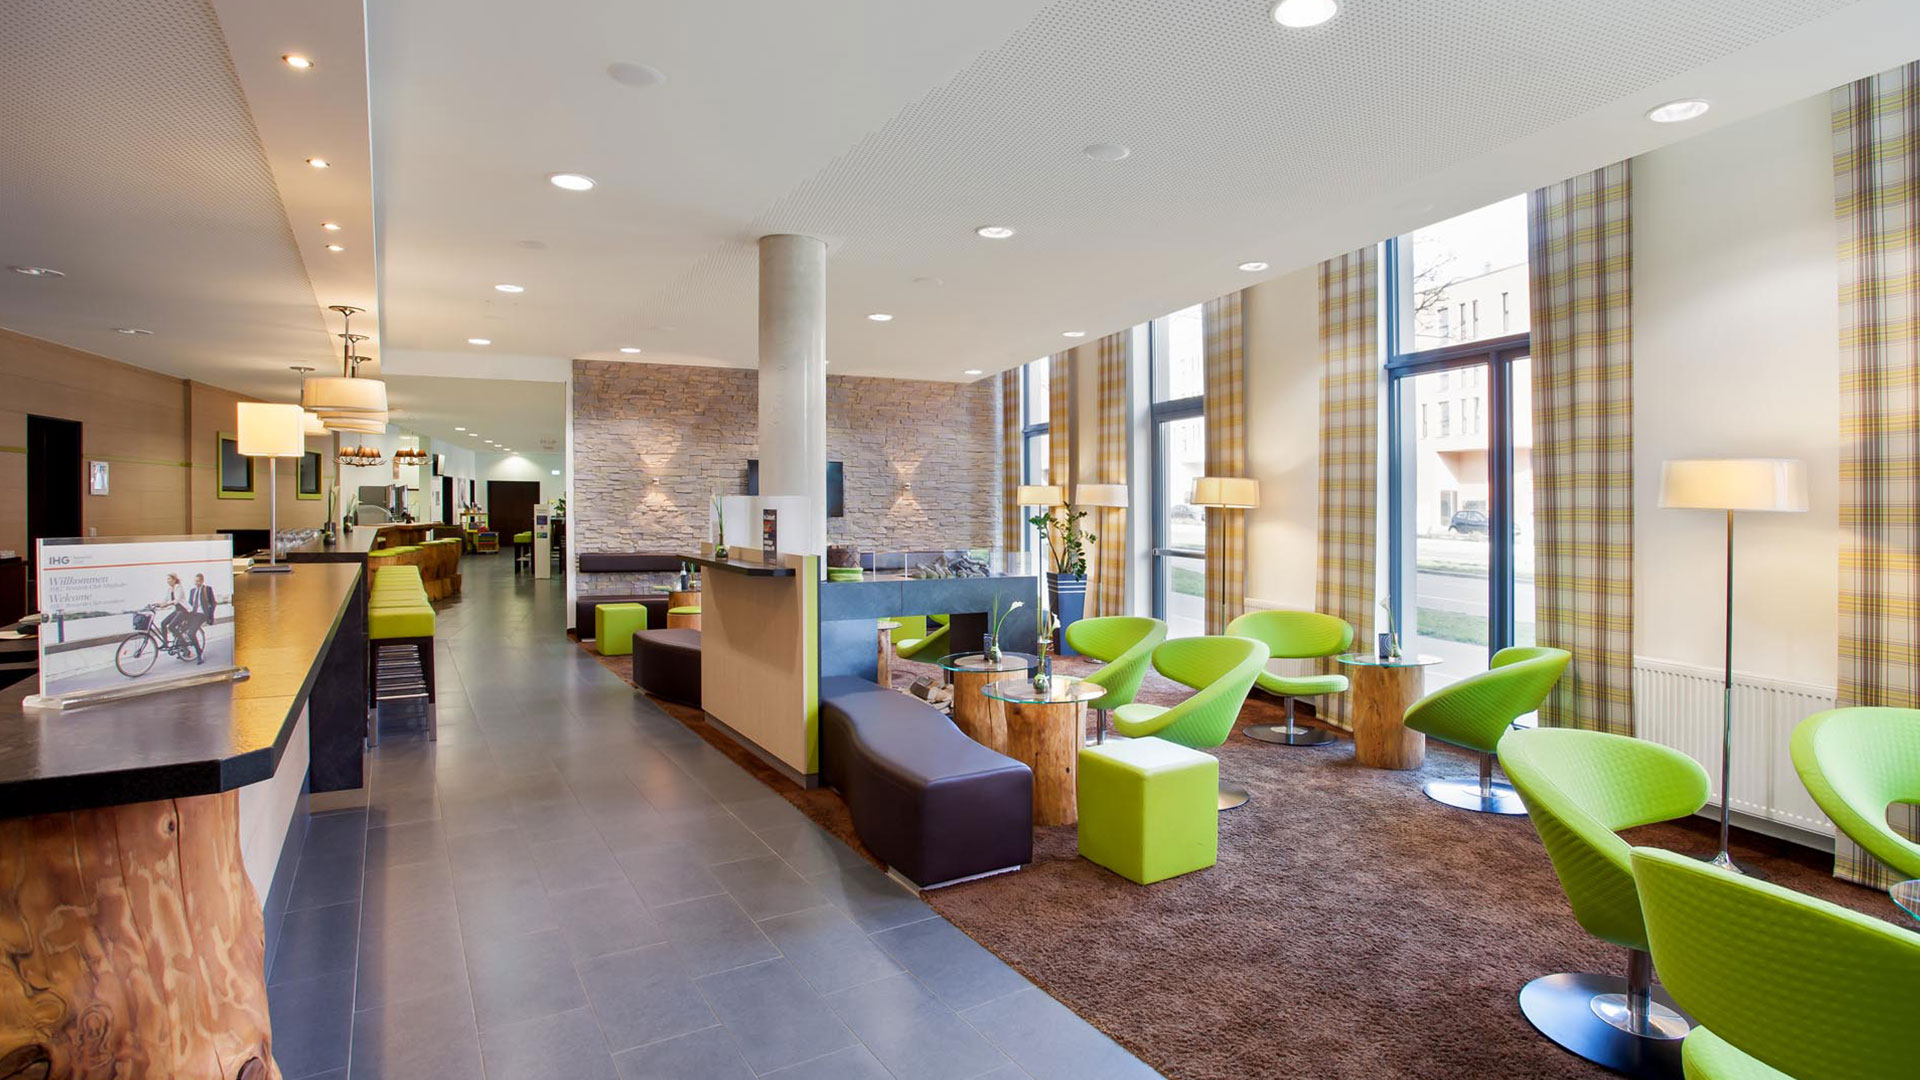 Photo of the lobby of the Holiday Inn Express Augsburg